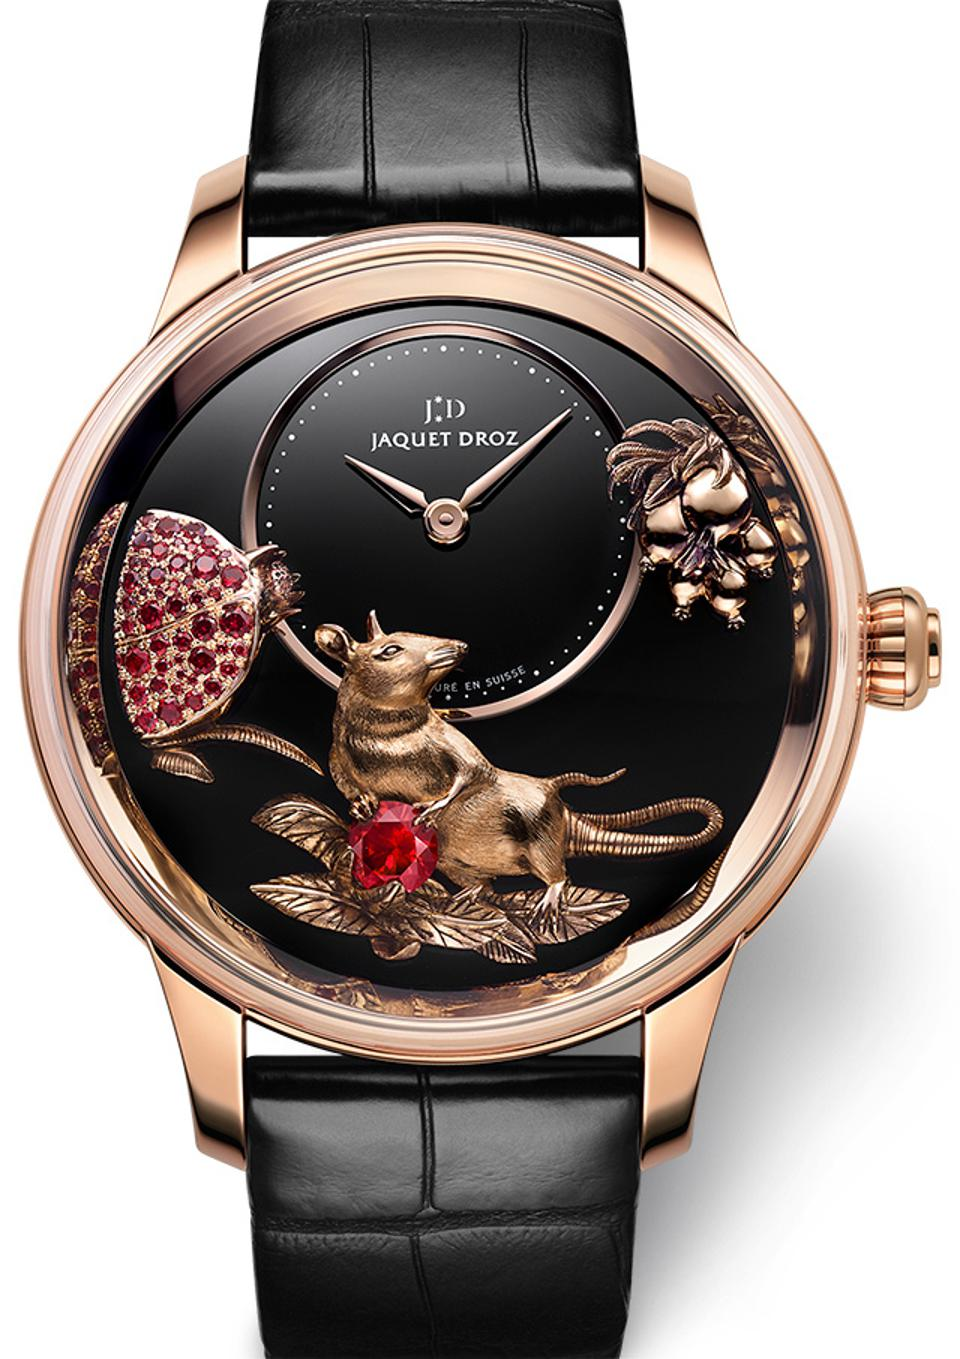 Blancpain, Jaquet Droz, Chopard, Panerai and Perrelet Celebrate The Year Of The Rat